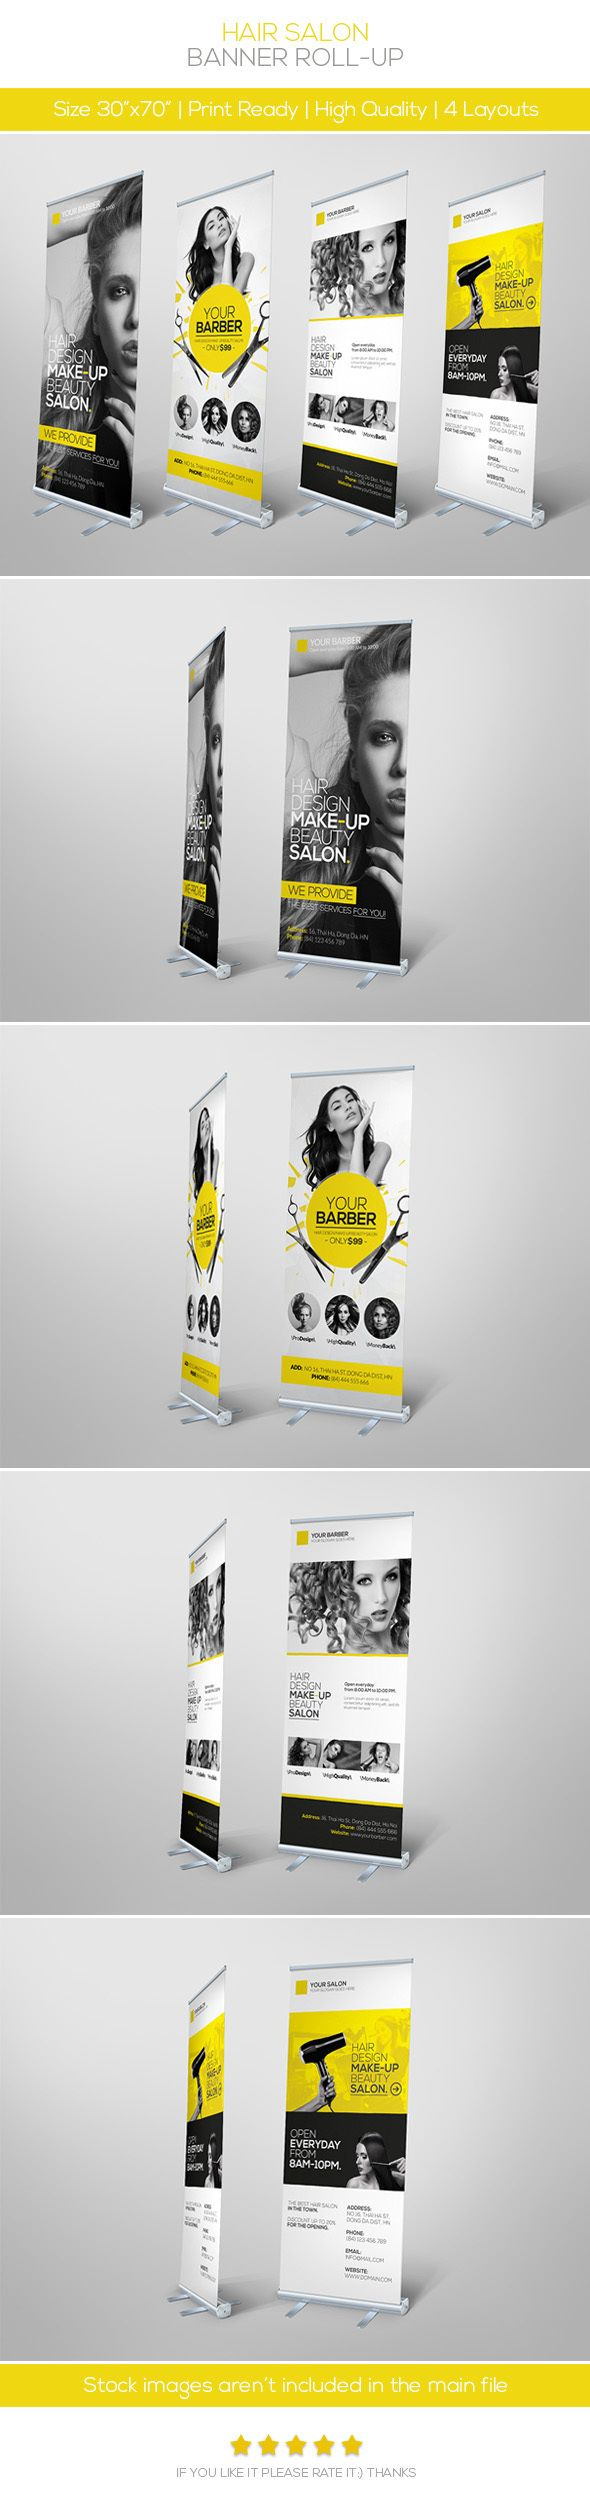 Banner Design Ideas music party creative banner vector graphics Premium Hair Salon Roll Up Banner Banner Design Inspirationweb